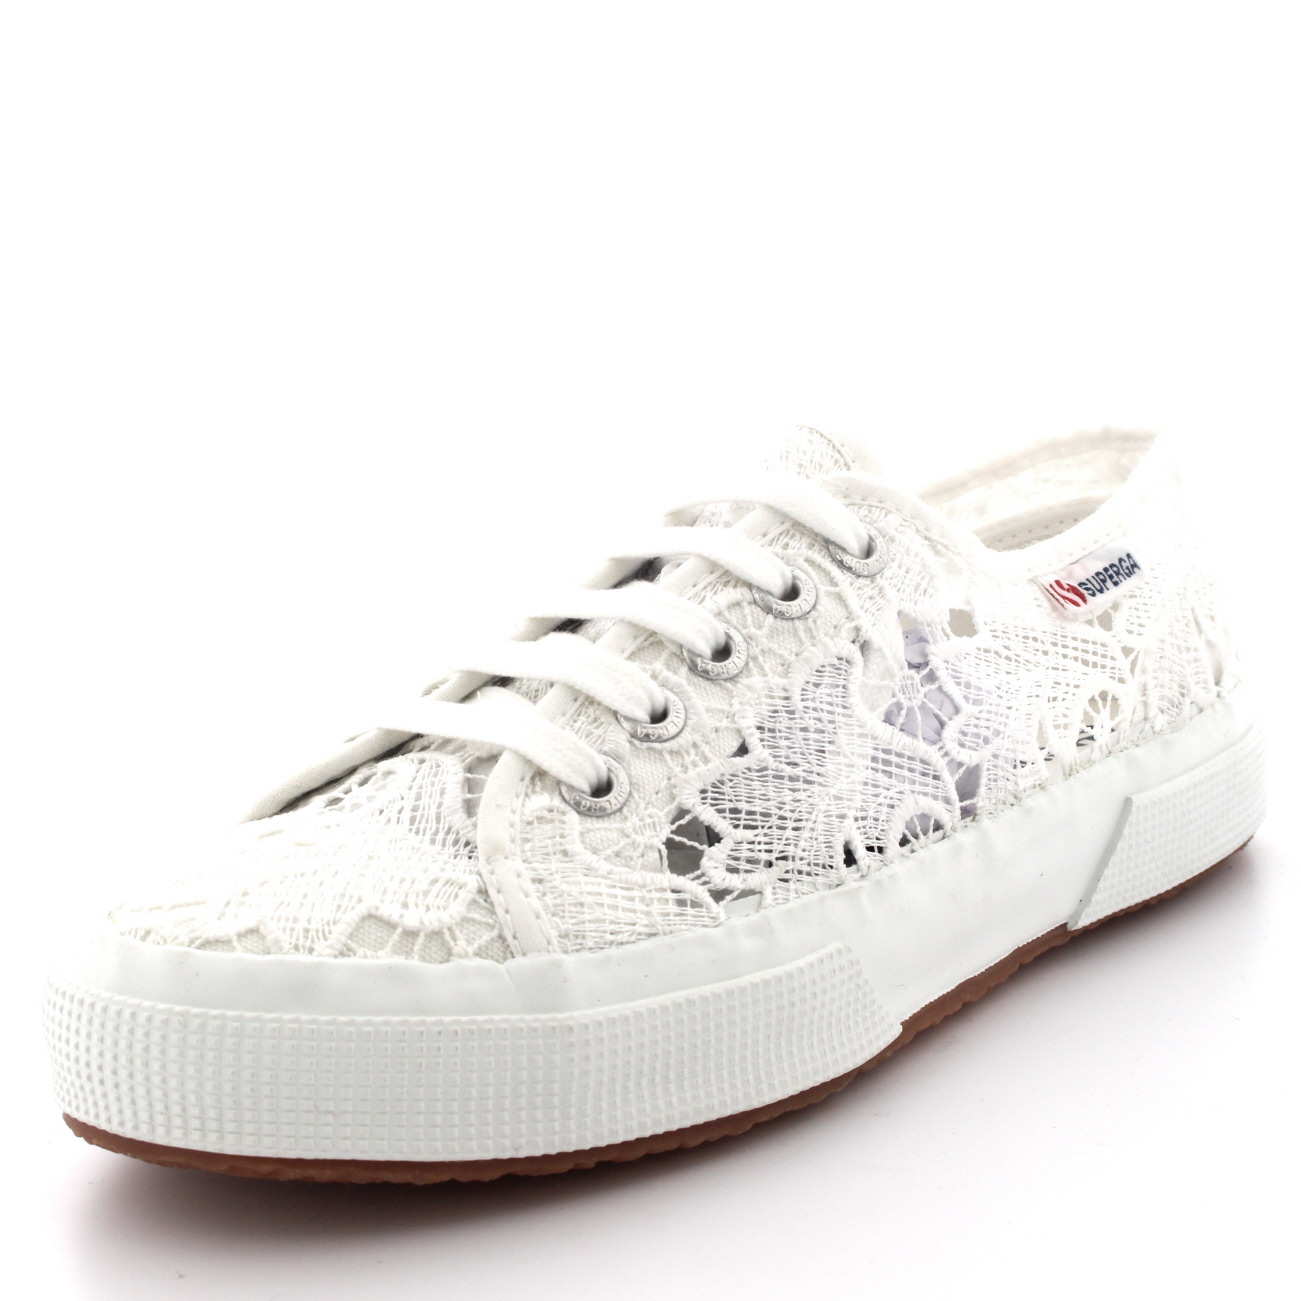 Da Donna Superga 2750 dedicarmi al macram moda pizzo Casual Basse ESTATE TG UK 38